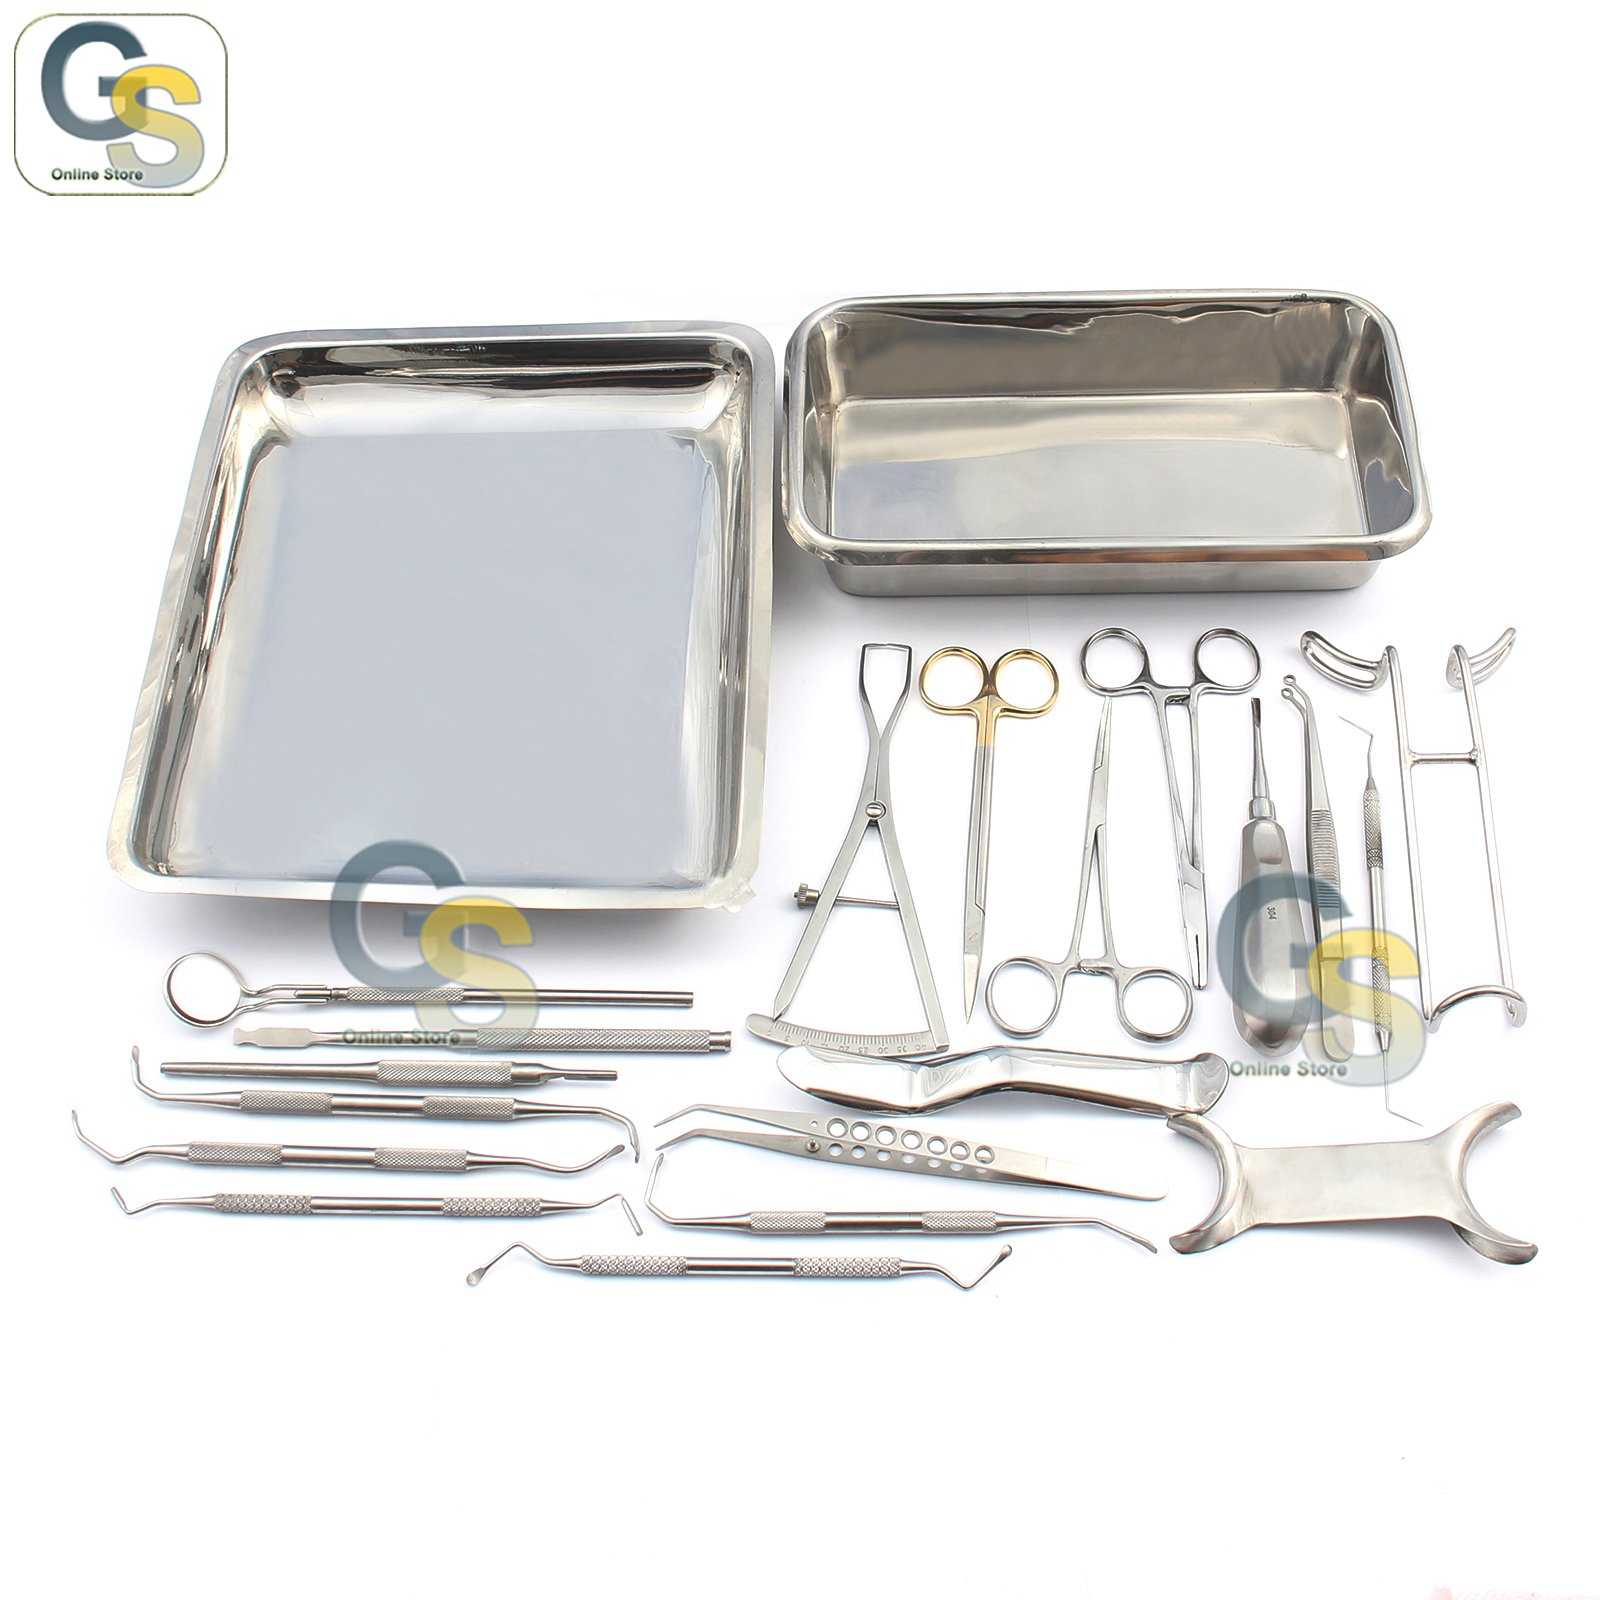 G.S-IMPLANT KIT-2 BEST QUALITY